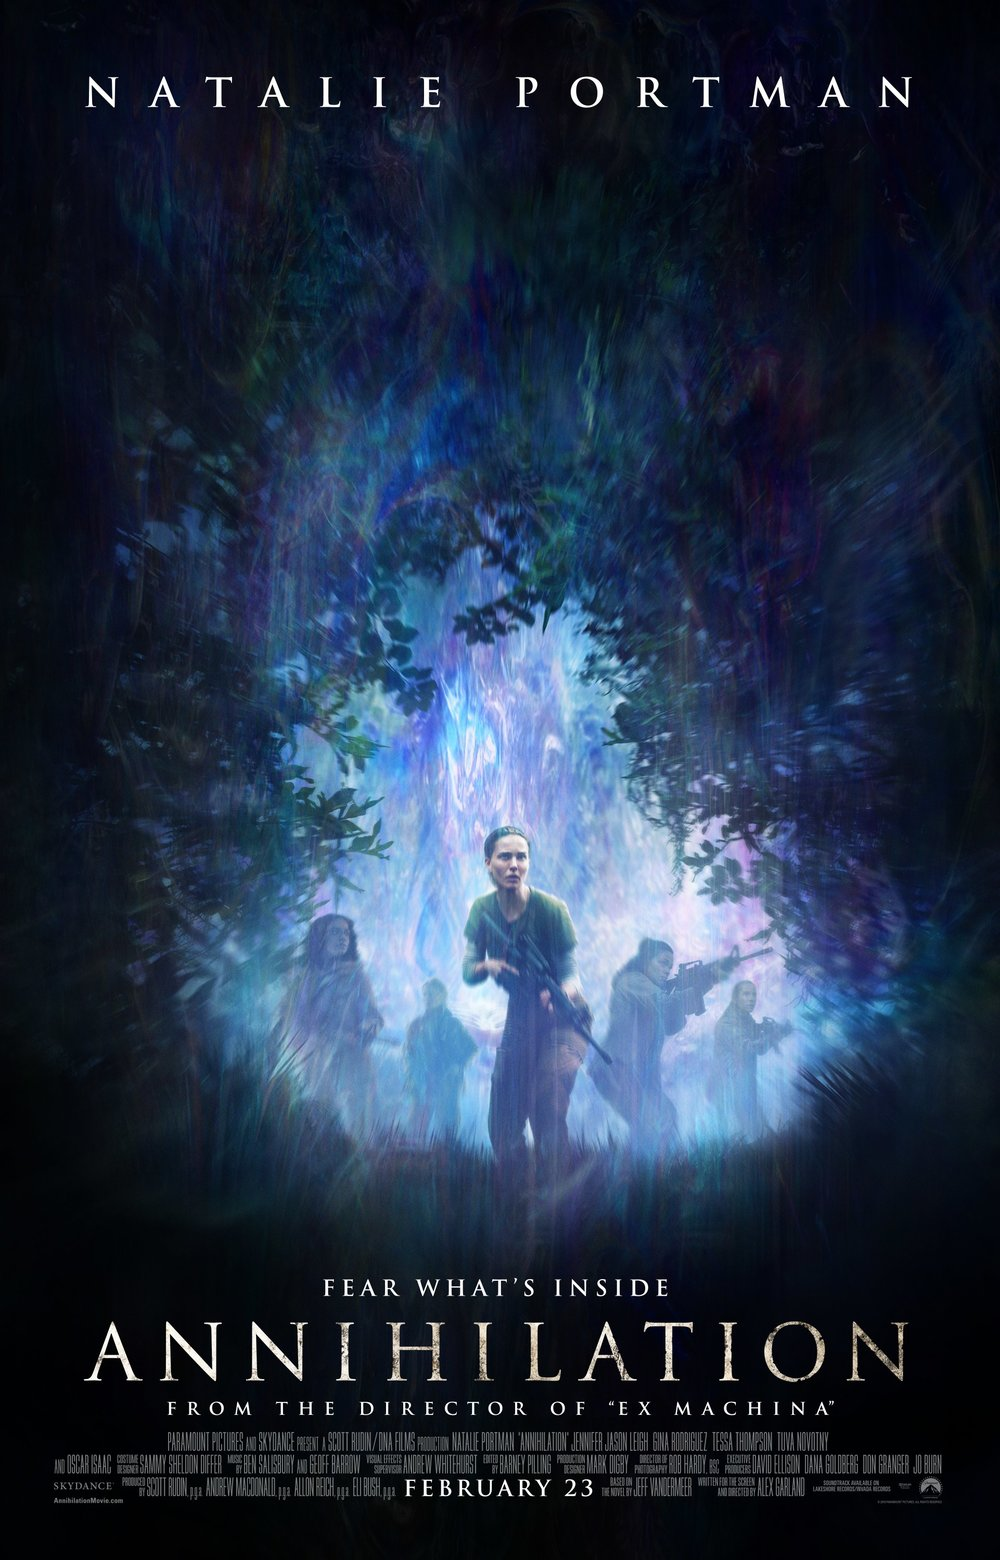 Annihilation   (2018) dir. Alex Garland Rated: R image: ©2018  Paramount Pictures